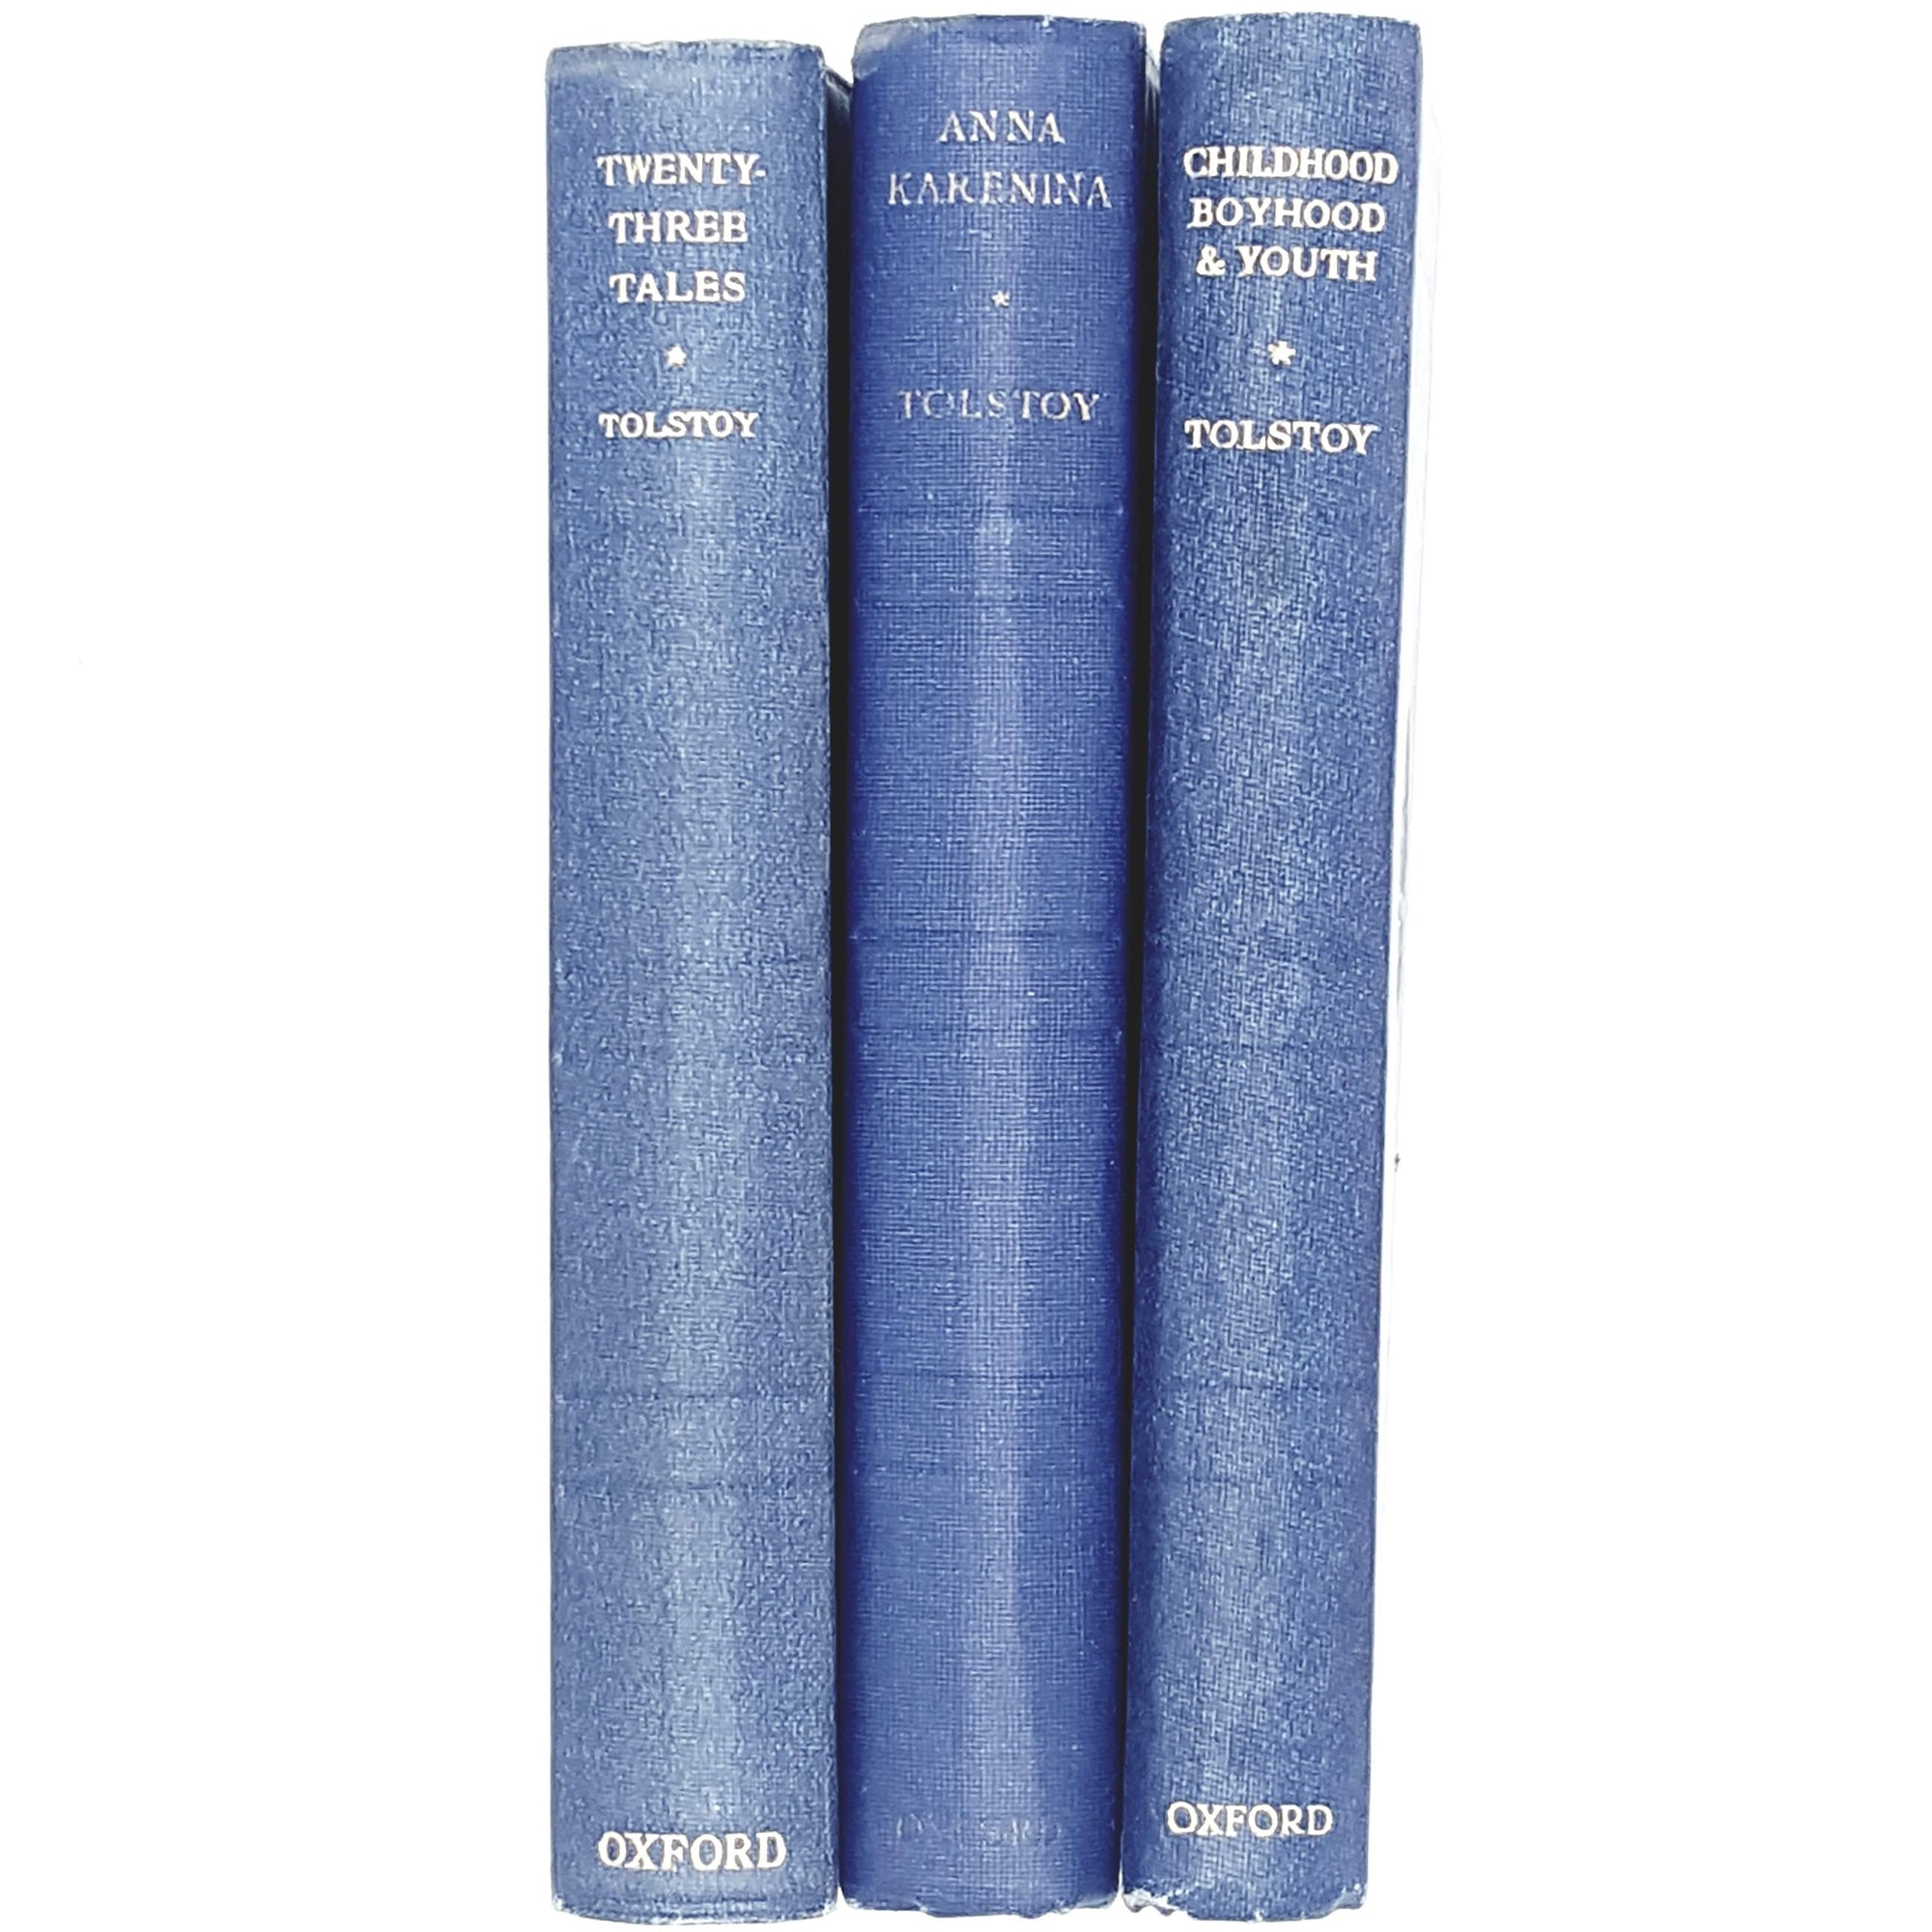 tolstoy-blue-collection-antique-book-country-house-library